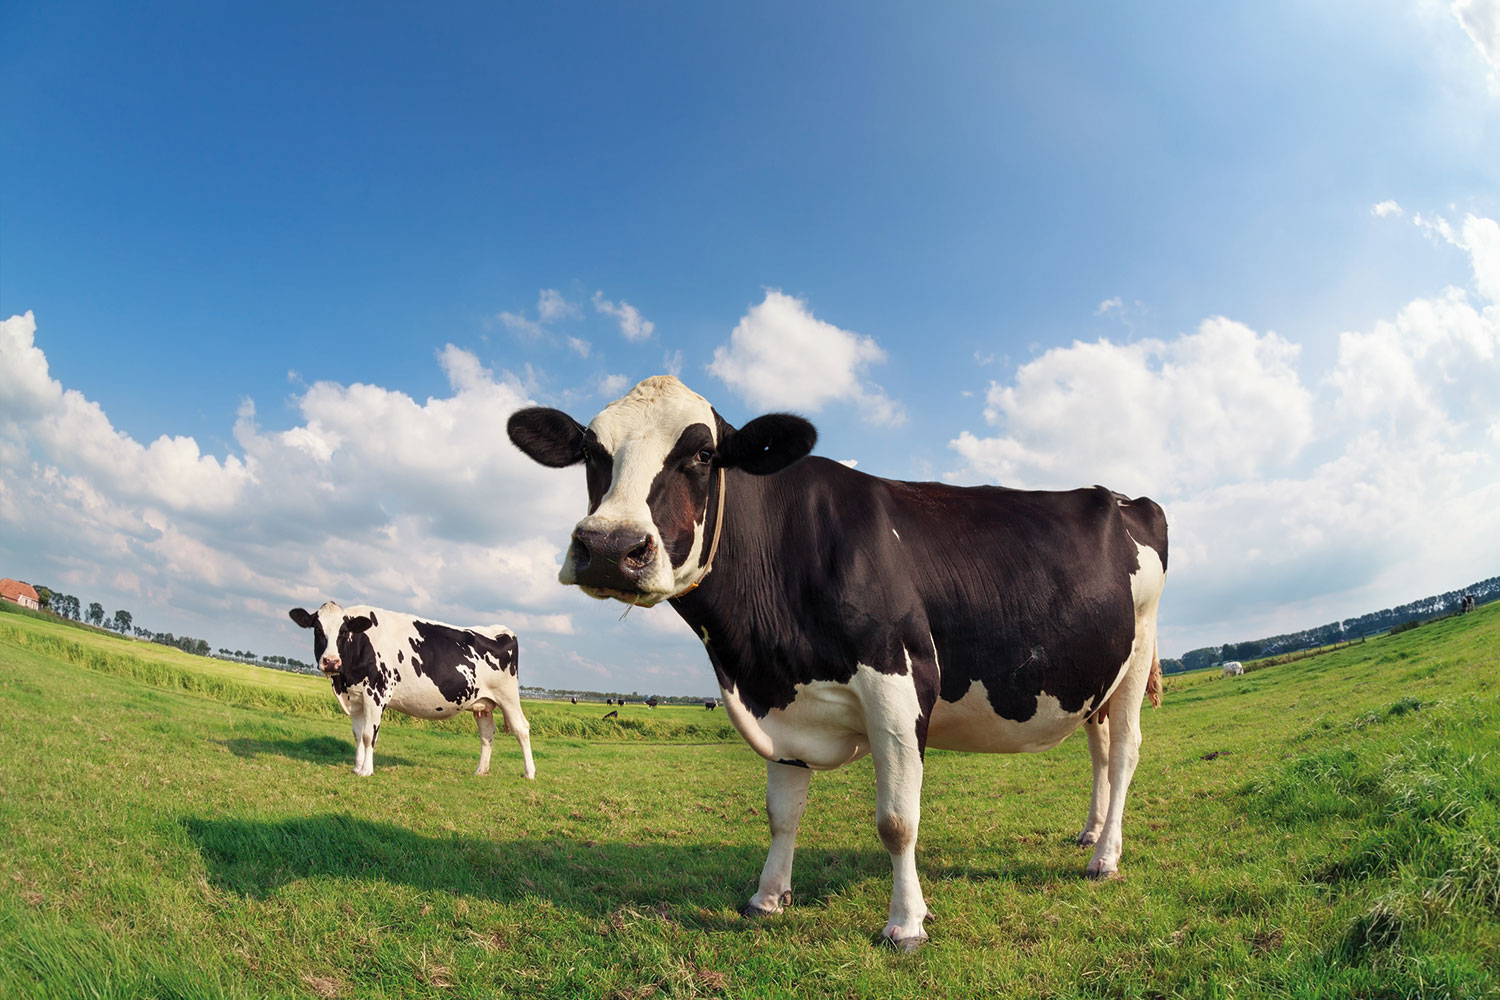 two-cows-on-green-pasture-on-sunny-day-PPYVB44.jpg